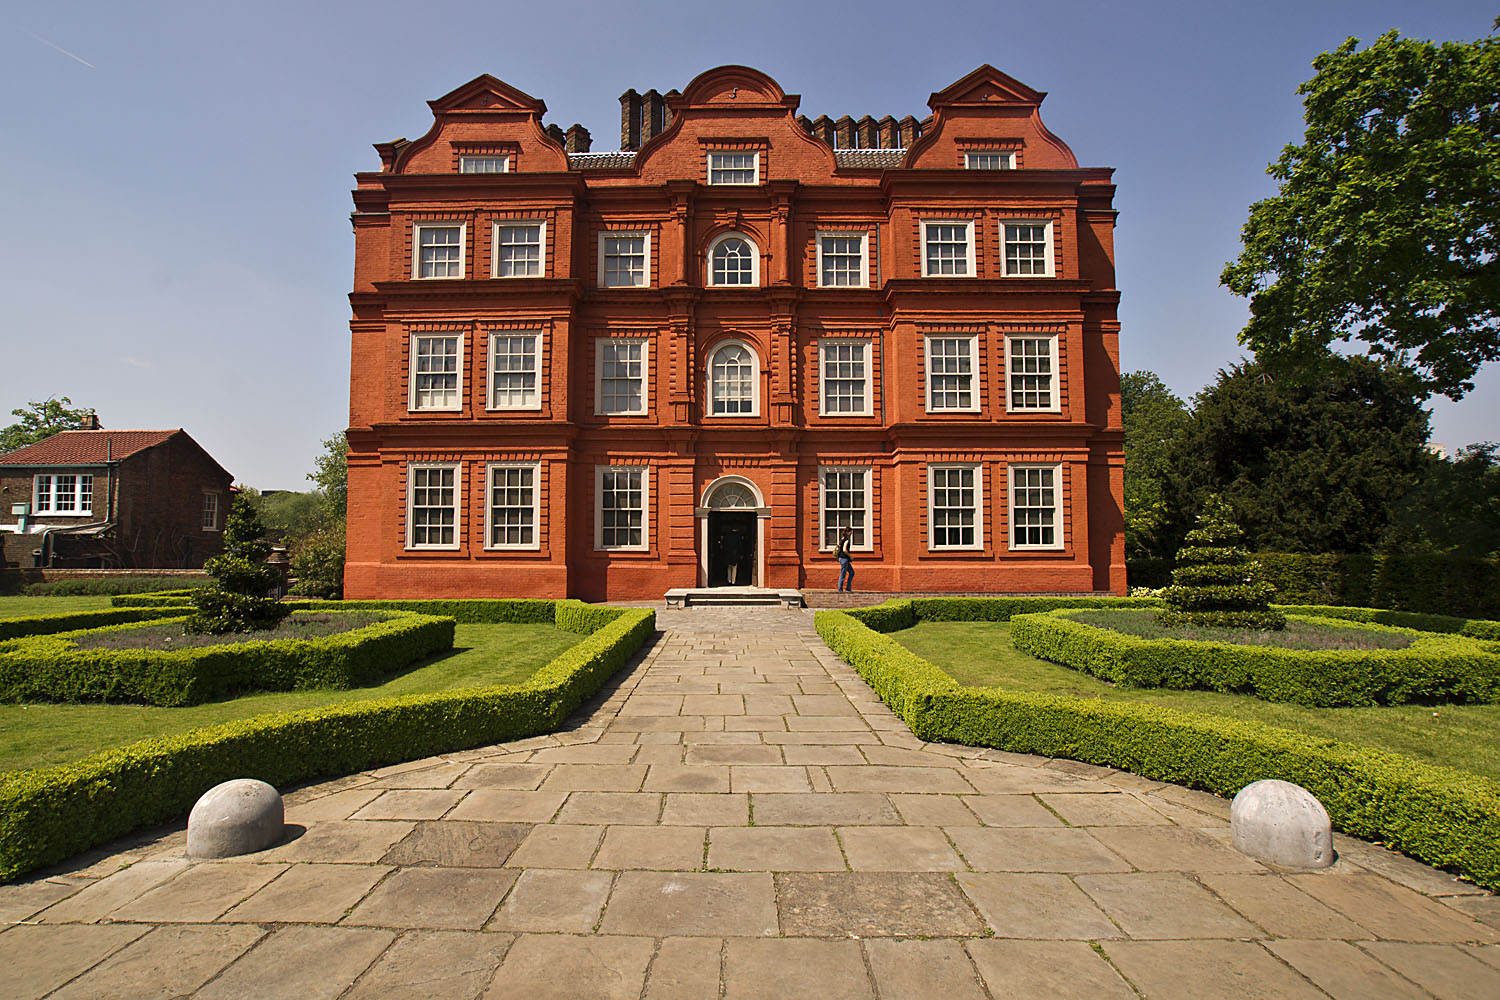 Kew Palace The Dutch House Meanderings Abound